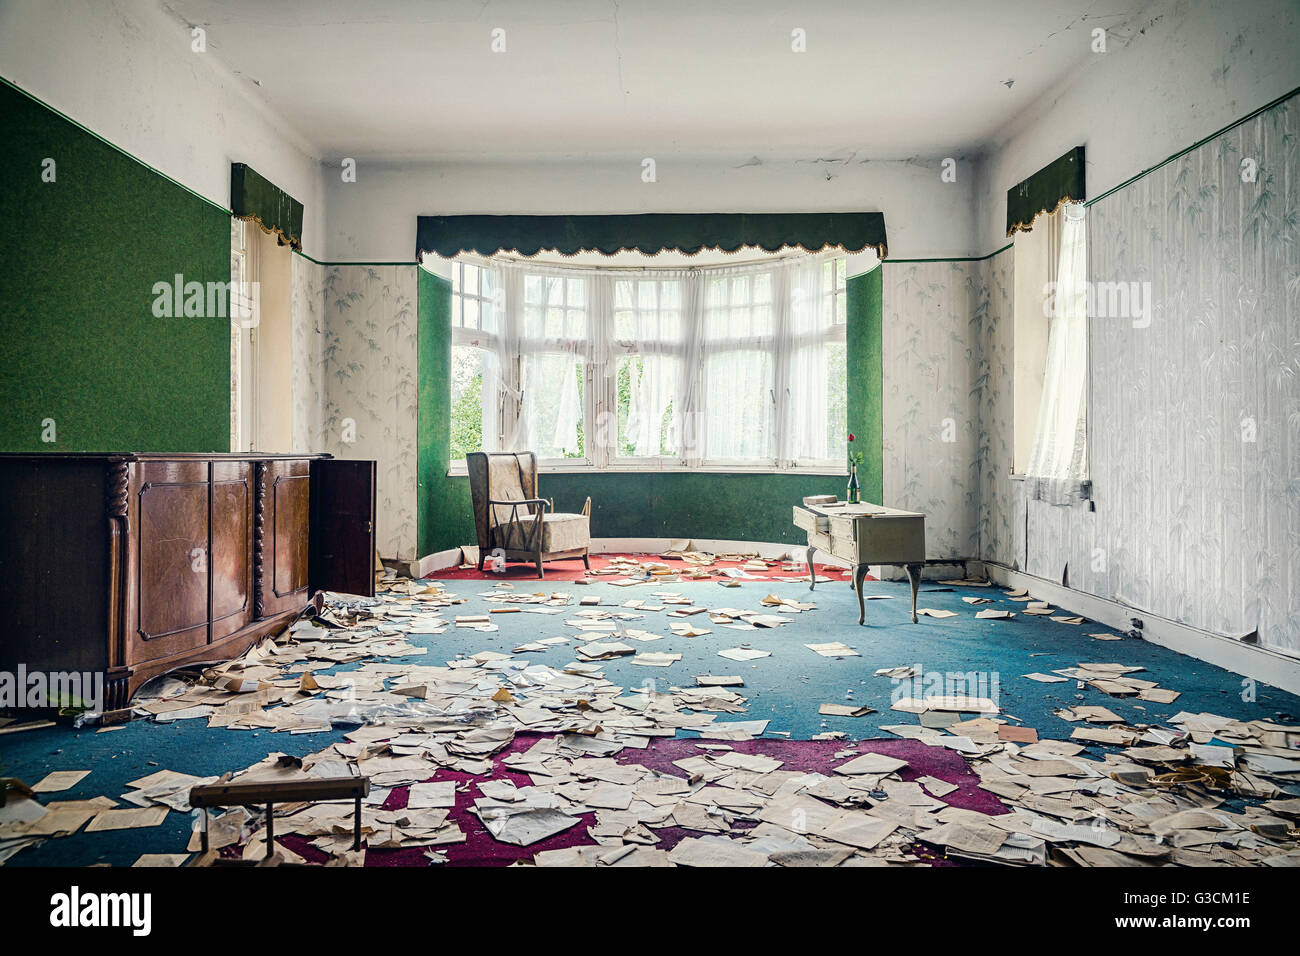 Reading room in an abandoned villa with book pages - Stock Image